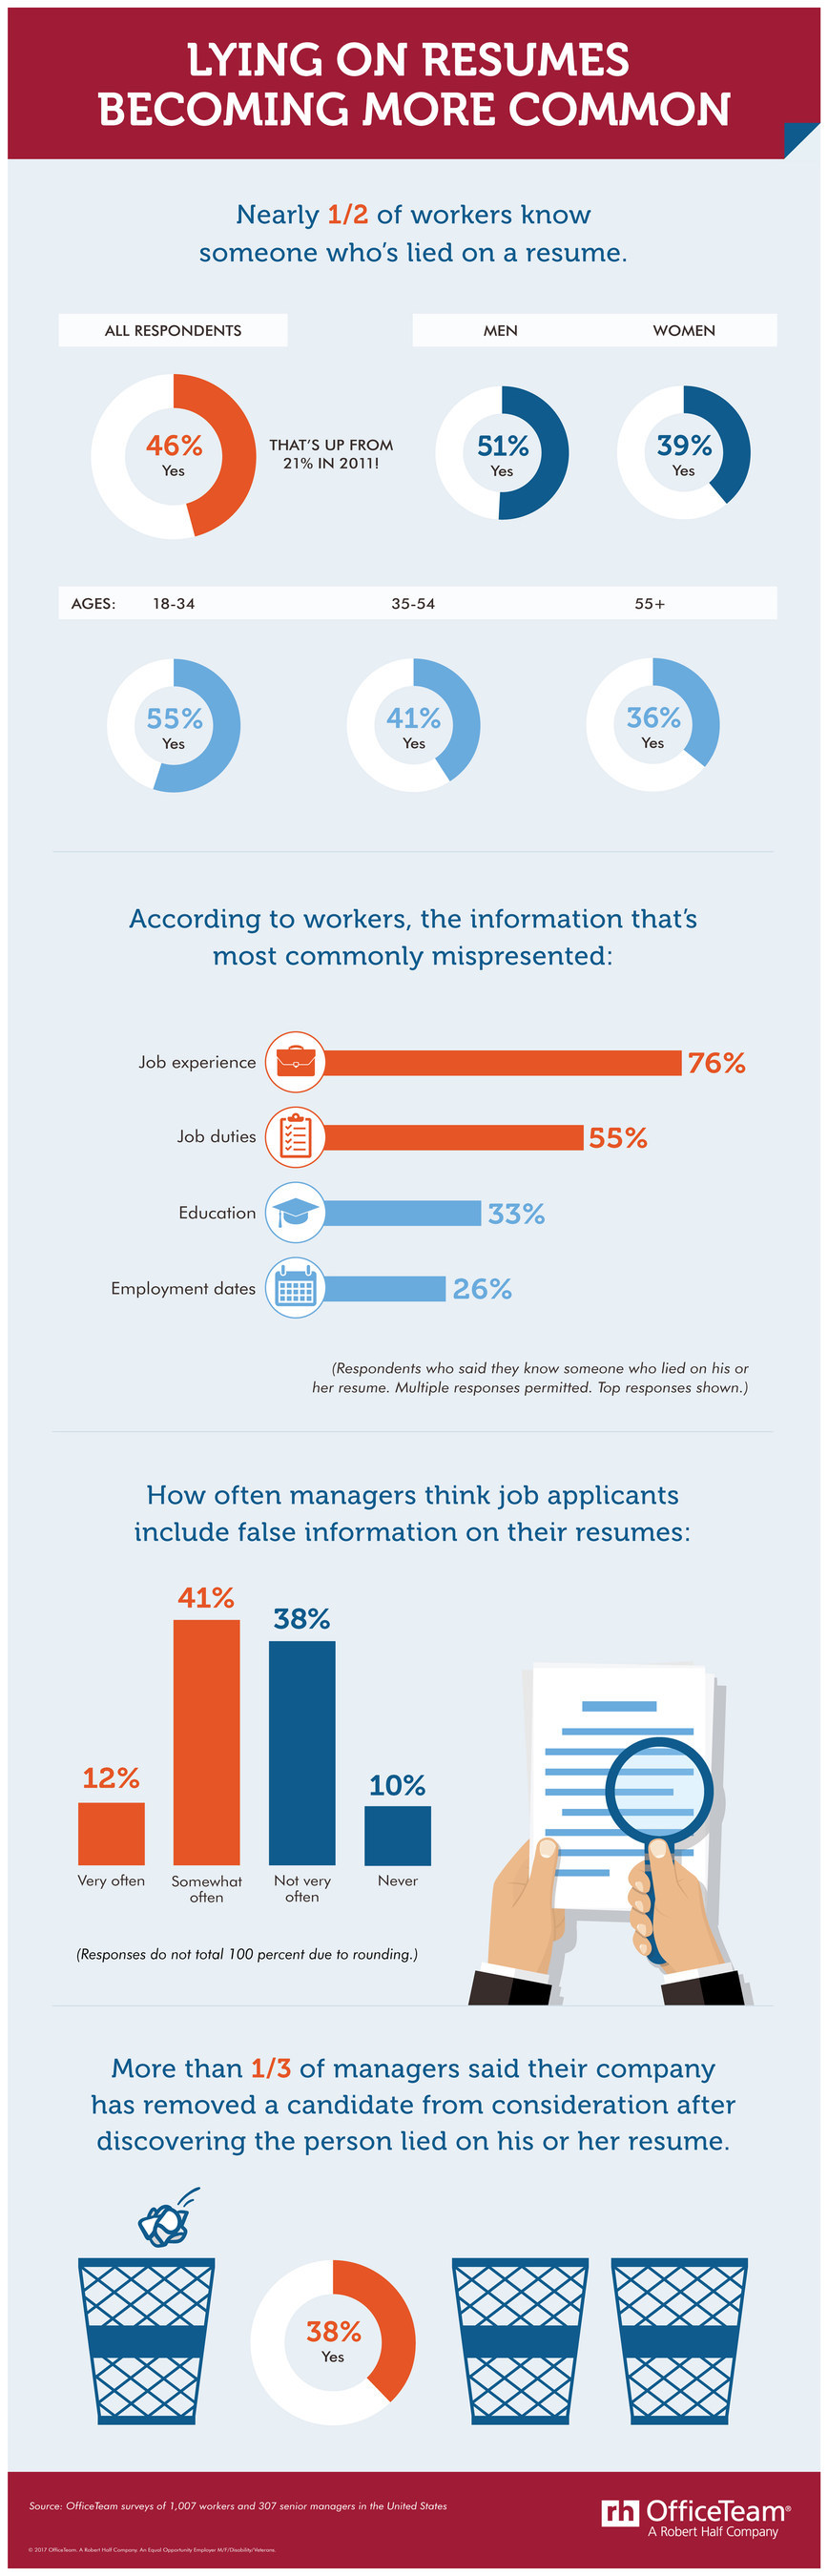 According to a new OfficeTeam survey, nearly half of workers (46%) know someone who included false information on a resume, a 25-point jump from 2011.